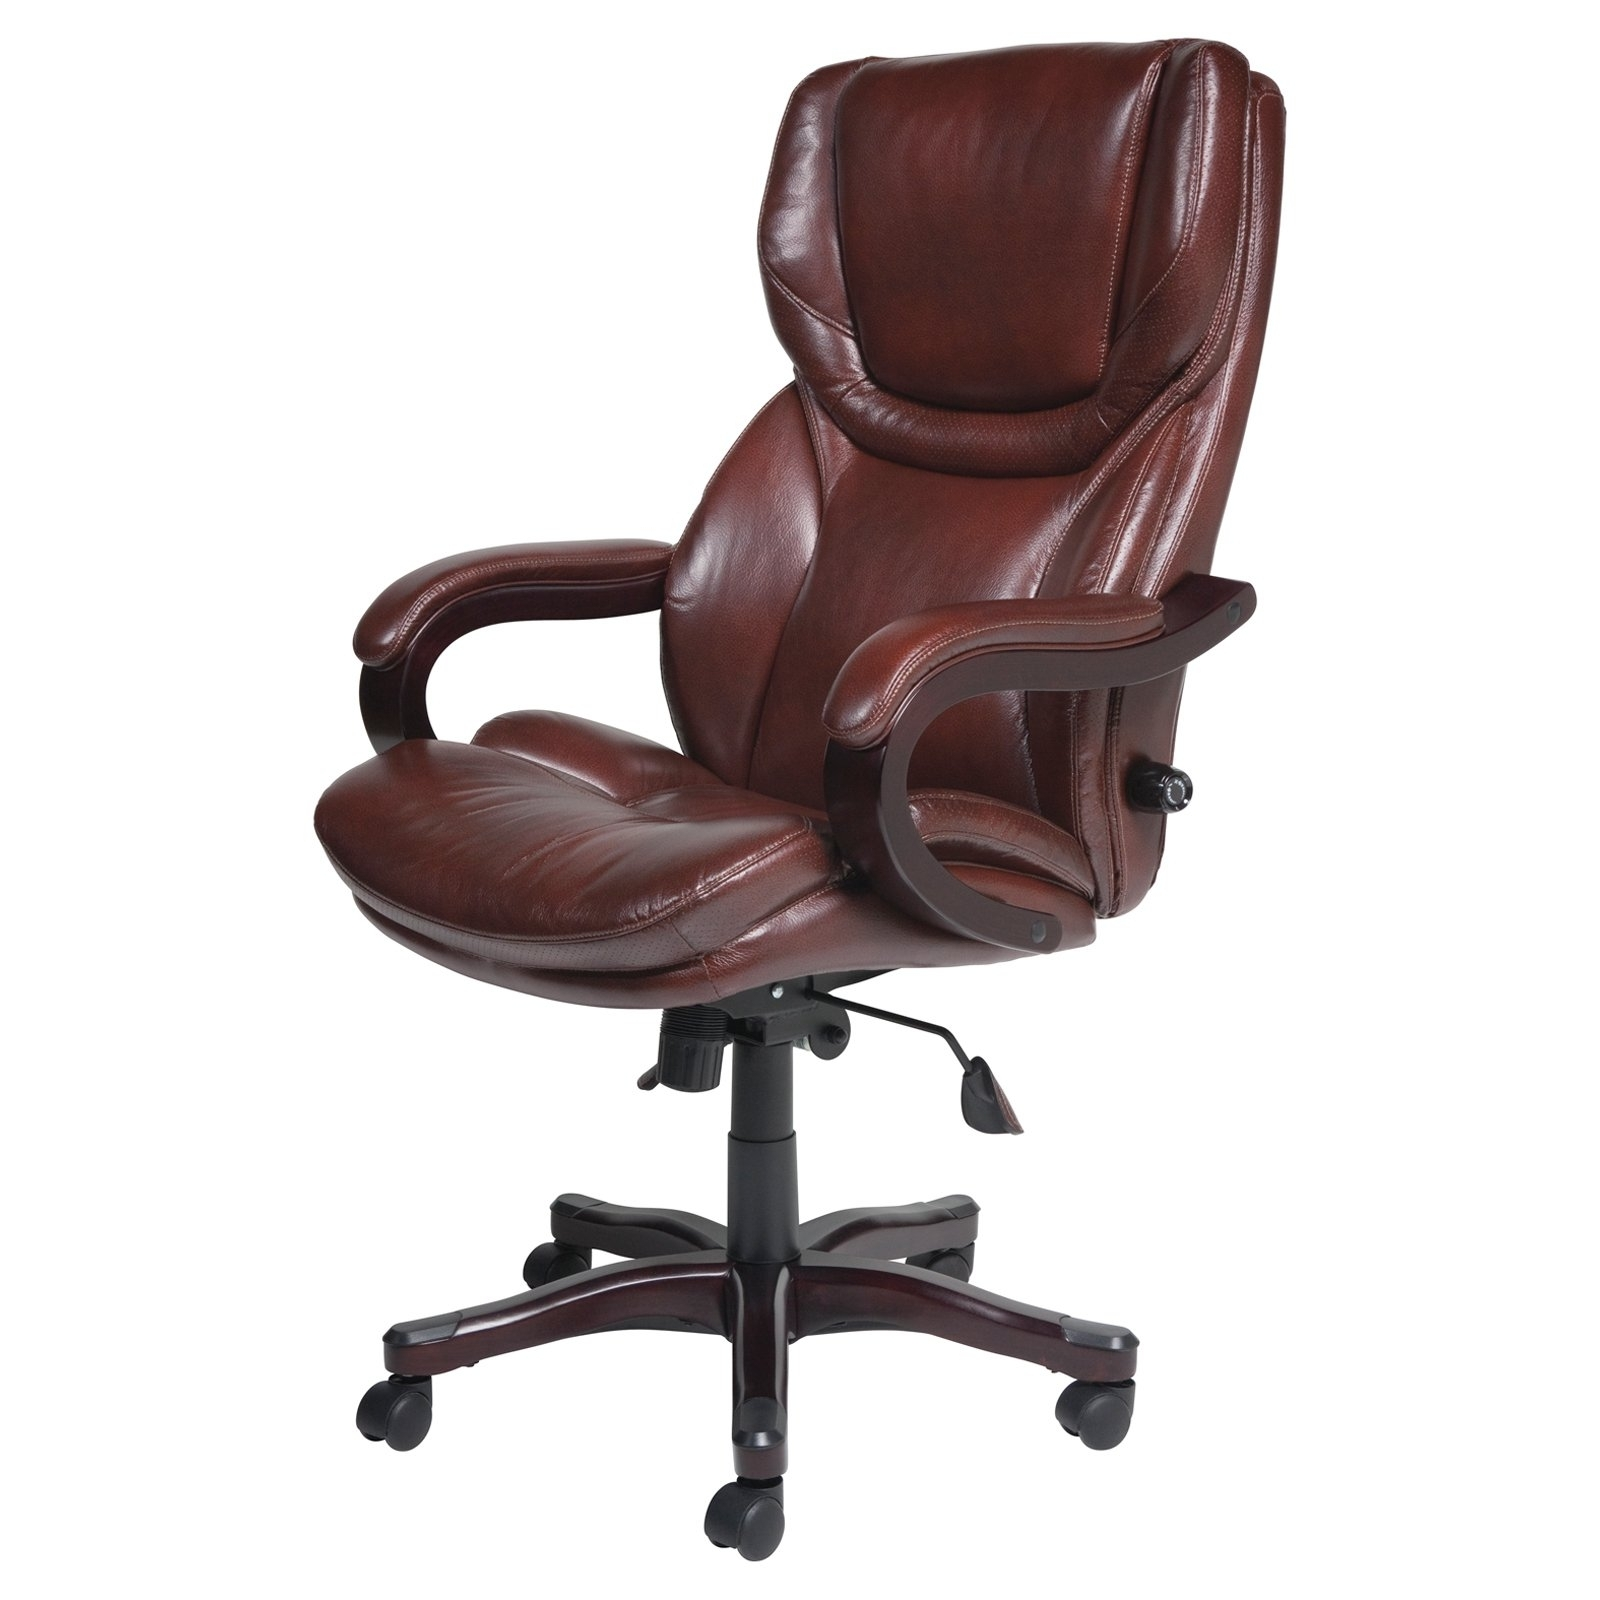 2019 Executive Office Chairs With Back Support Regarding Chair : Ergonomic Black Leather Executive Office Chair Verona (View 3 of 20)